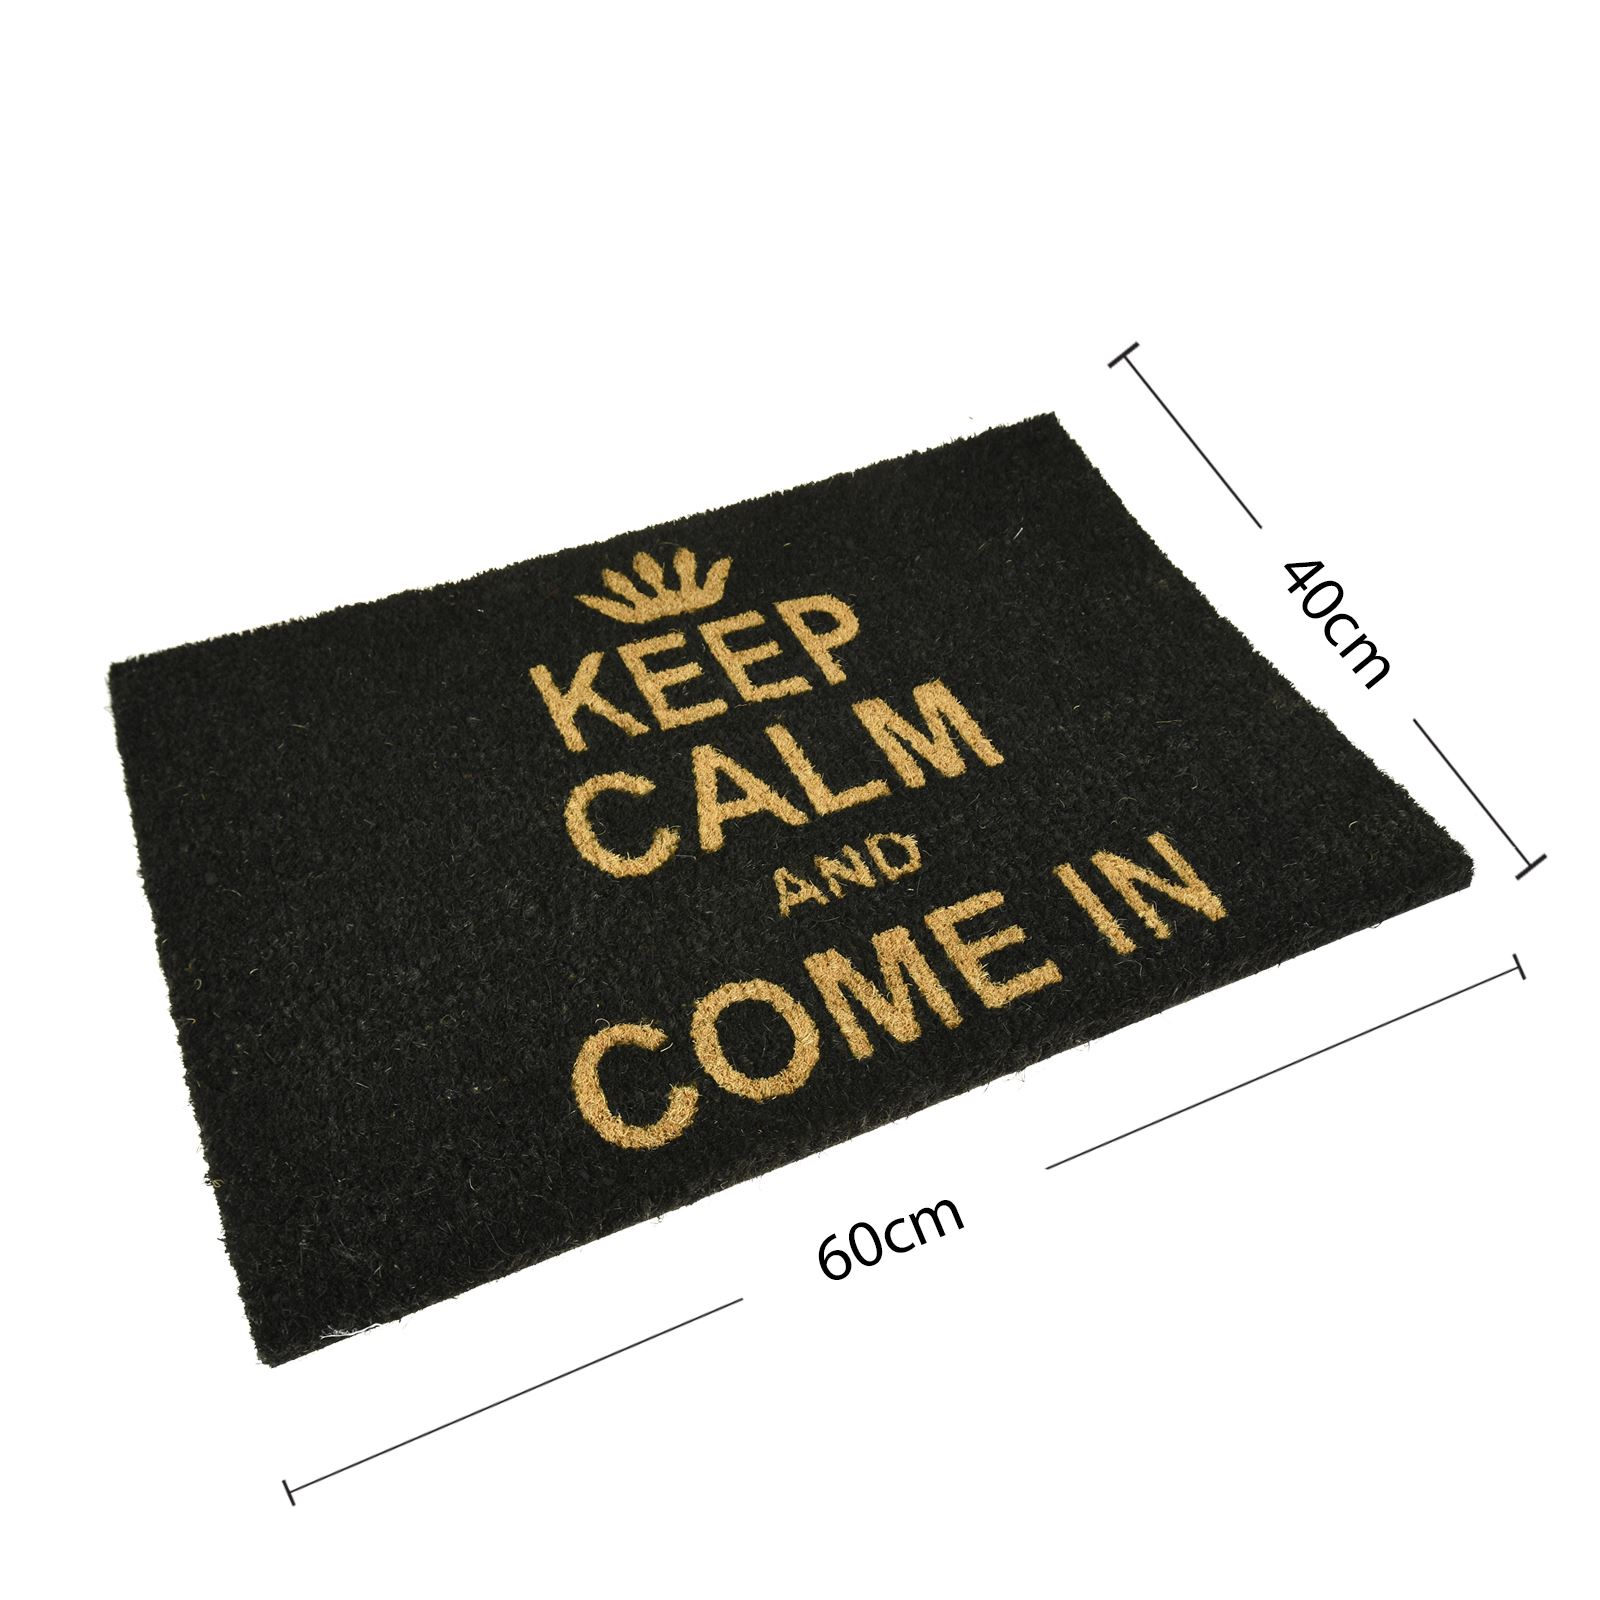 Leave Welcome Mat Door Mat Coir 60x40cm Keep Calm And Come In Black Asab